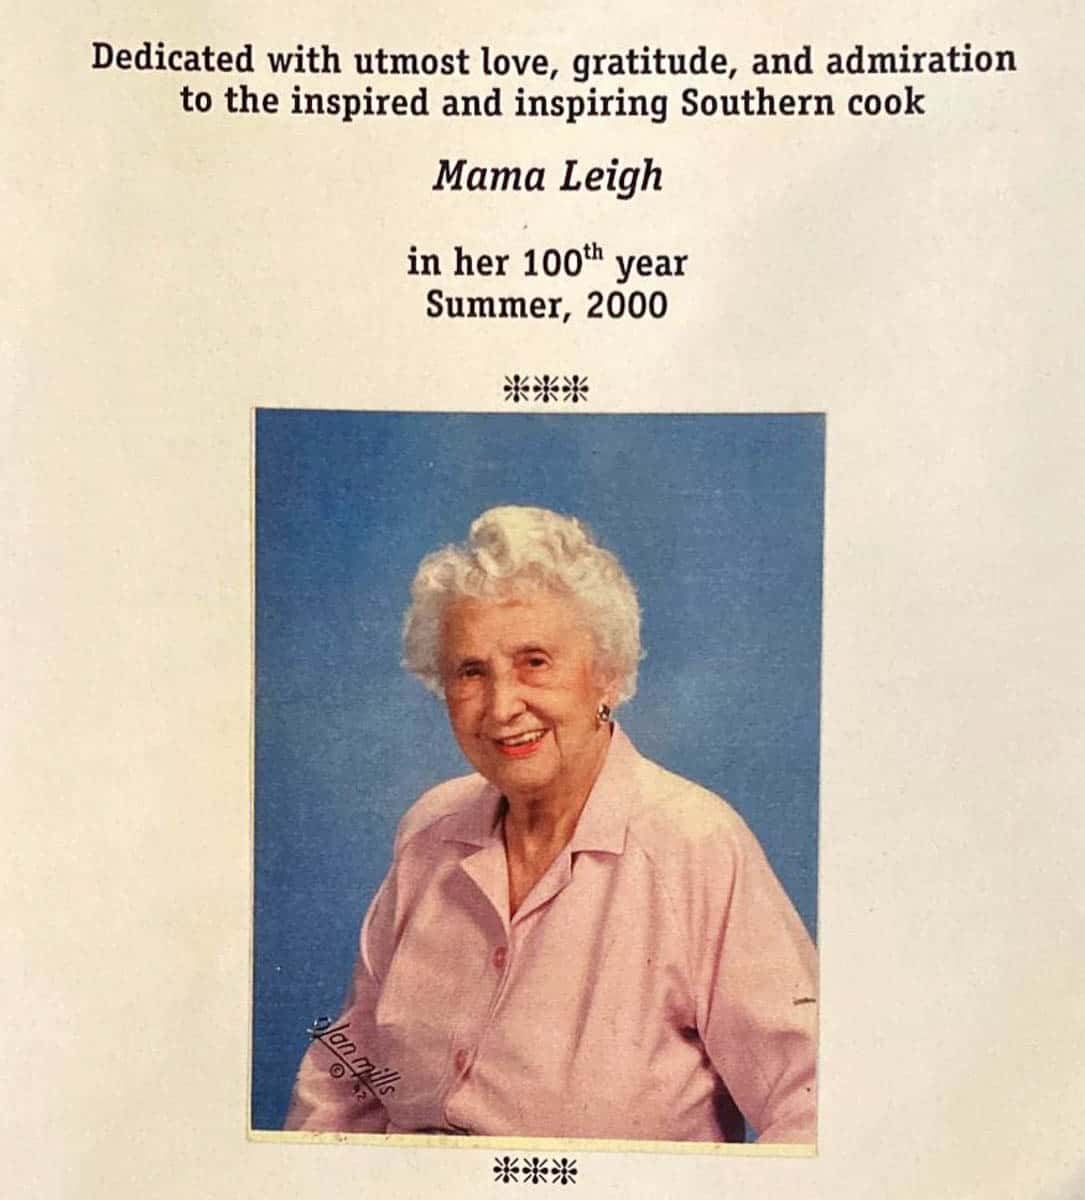 Photo of woman who wrote this recipe